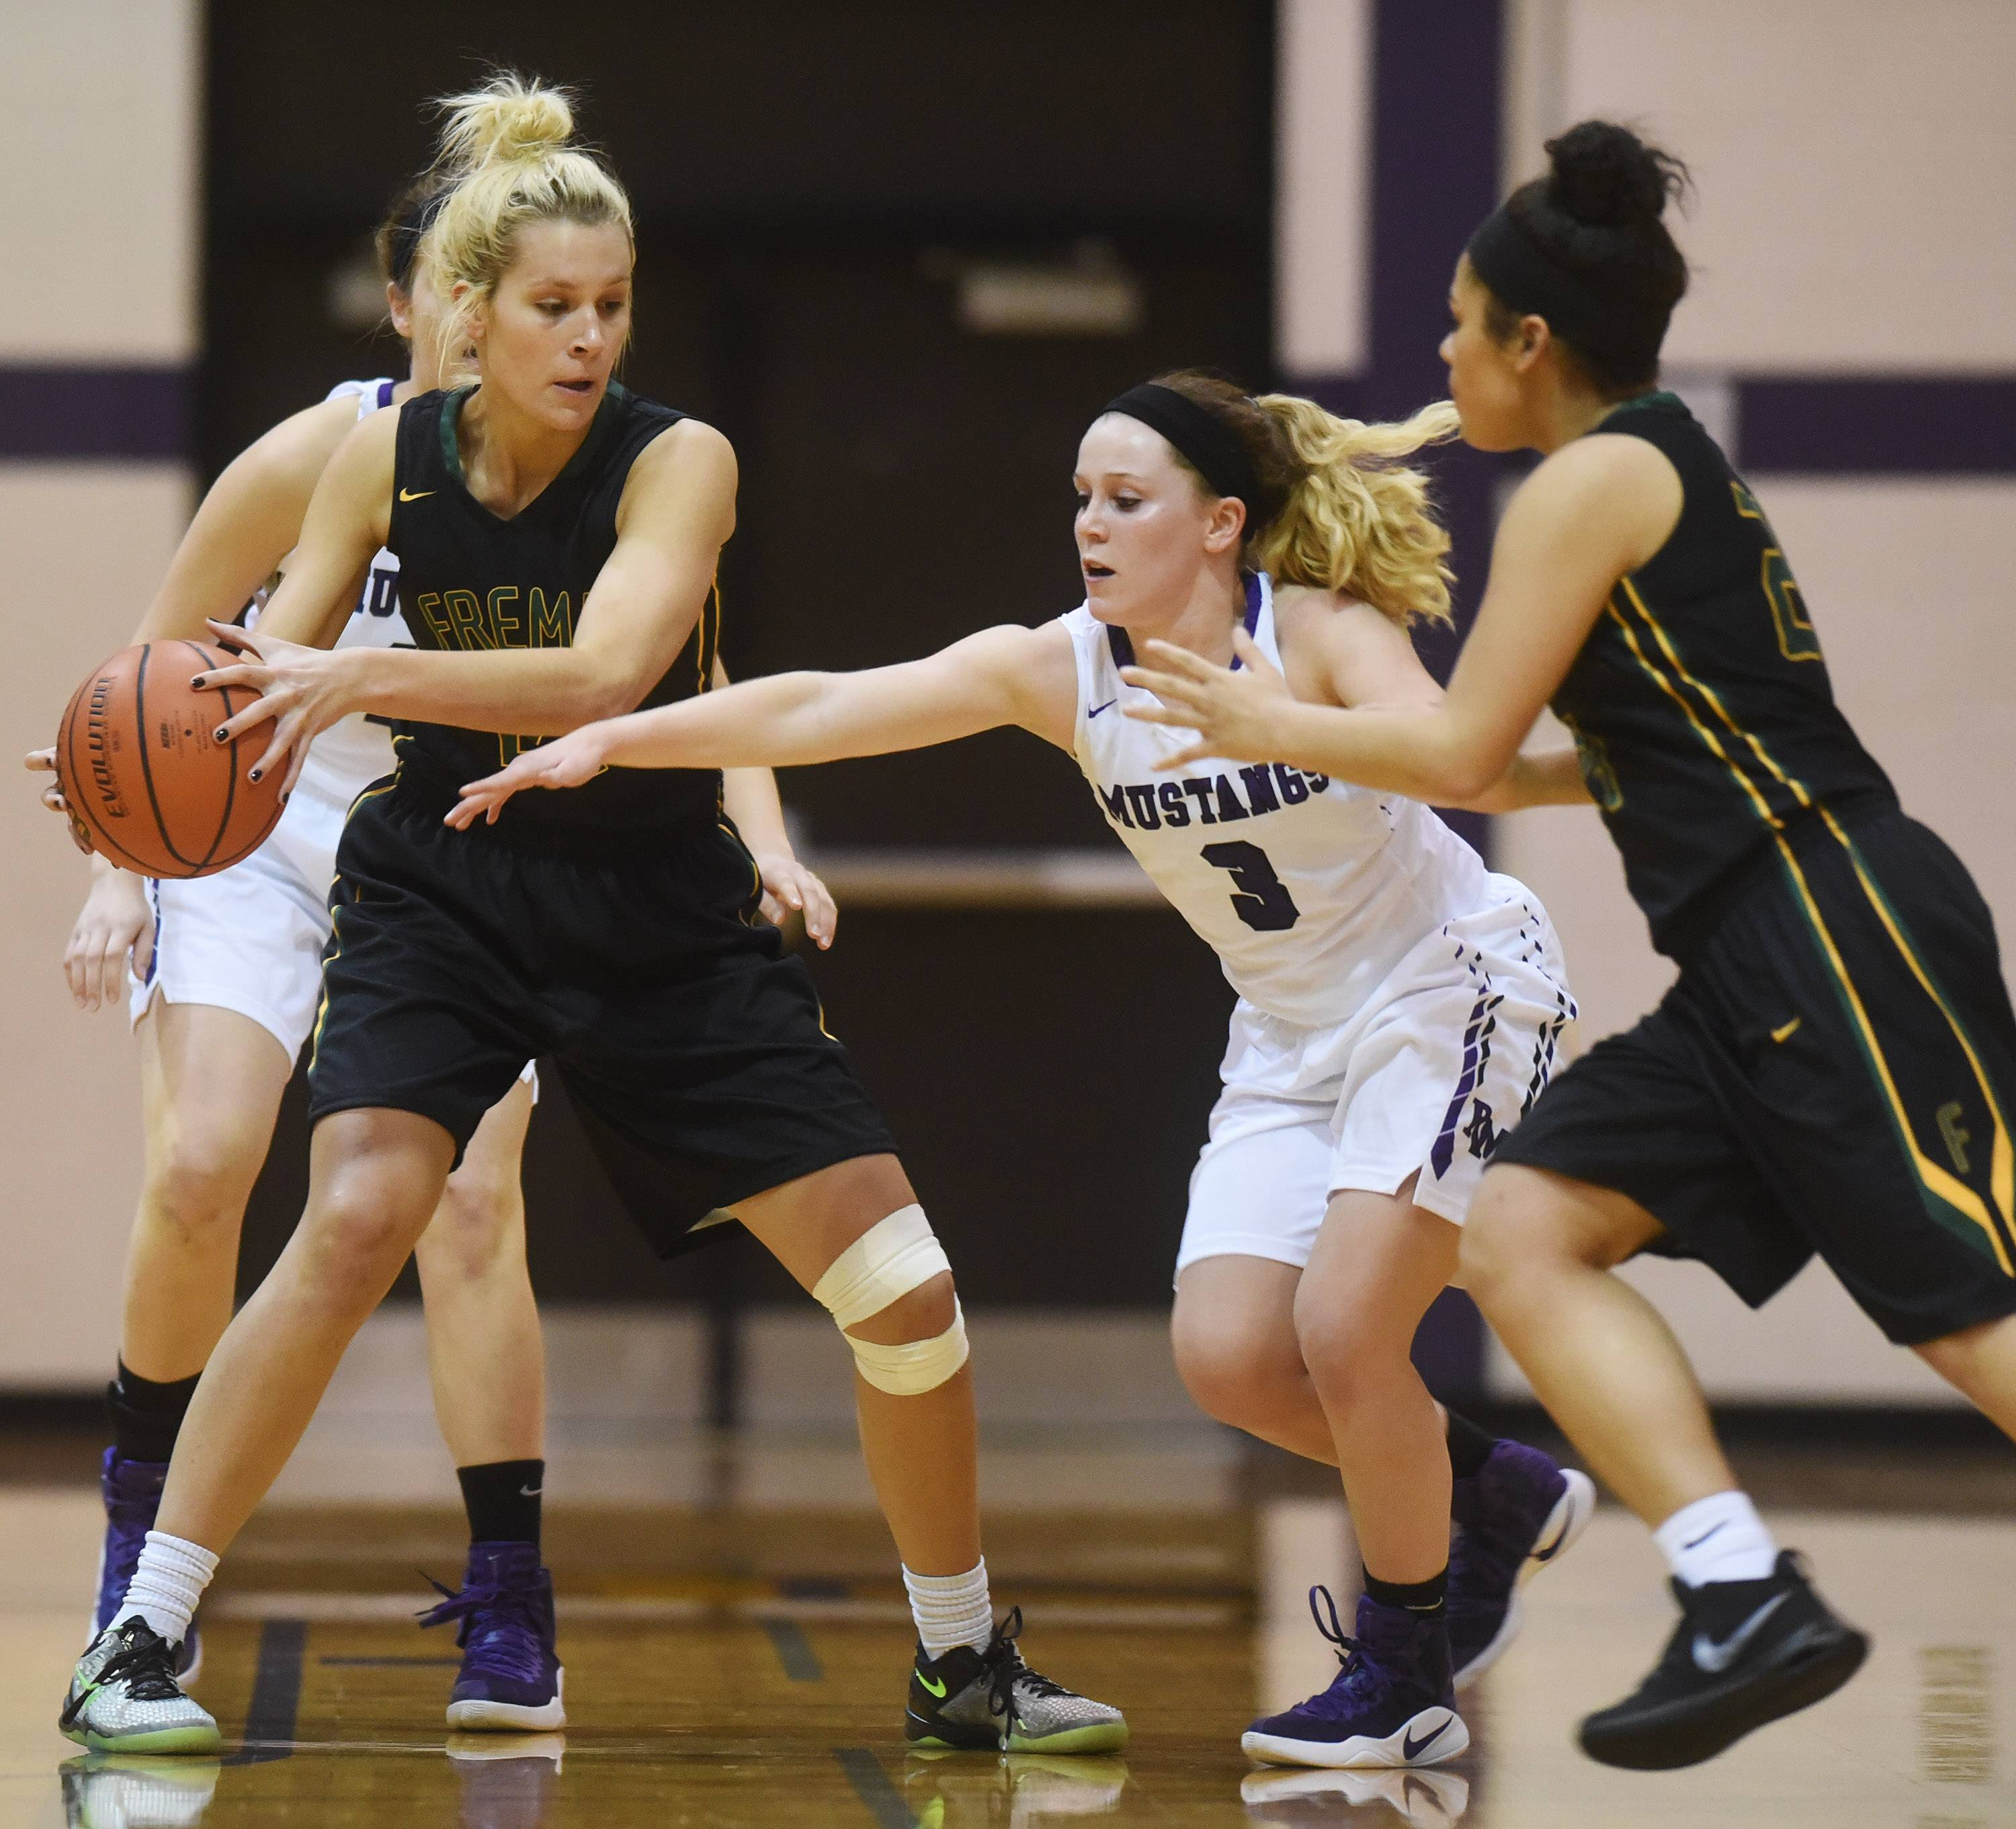 Fremd's Grace Tworek, left, looks to make a move to the basket against the Rolling Meadows defense including Clare Preissing (3) during Tuesday's game.